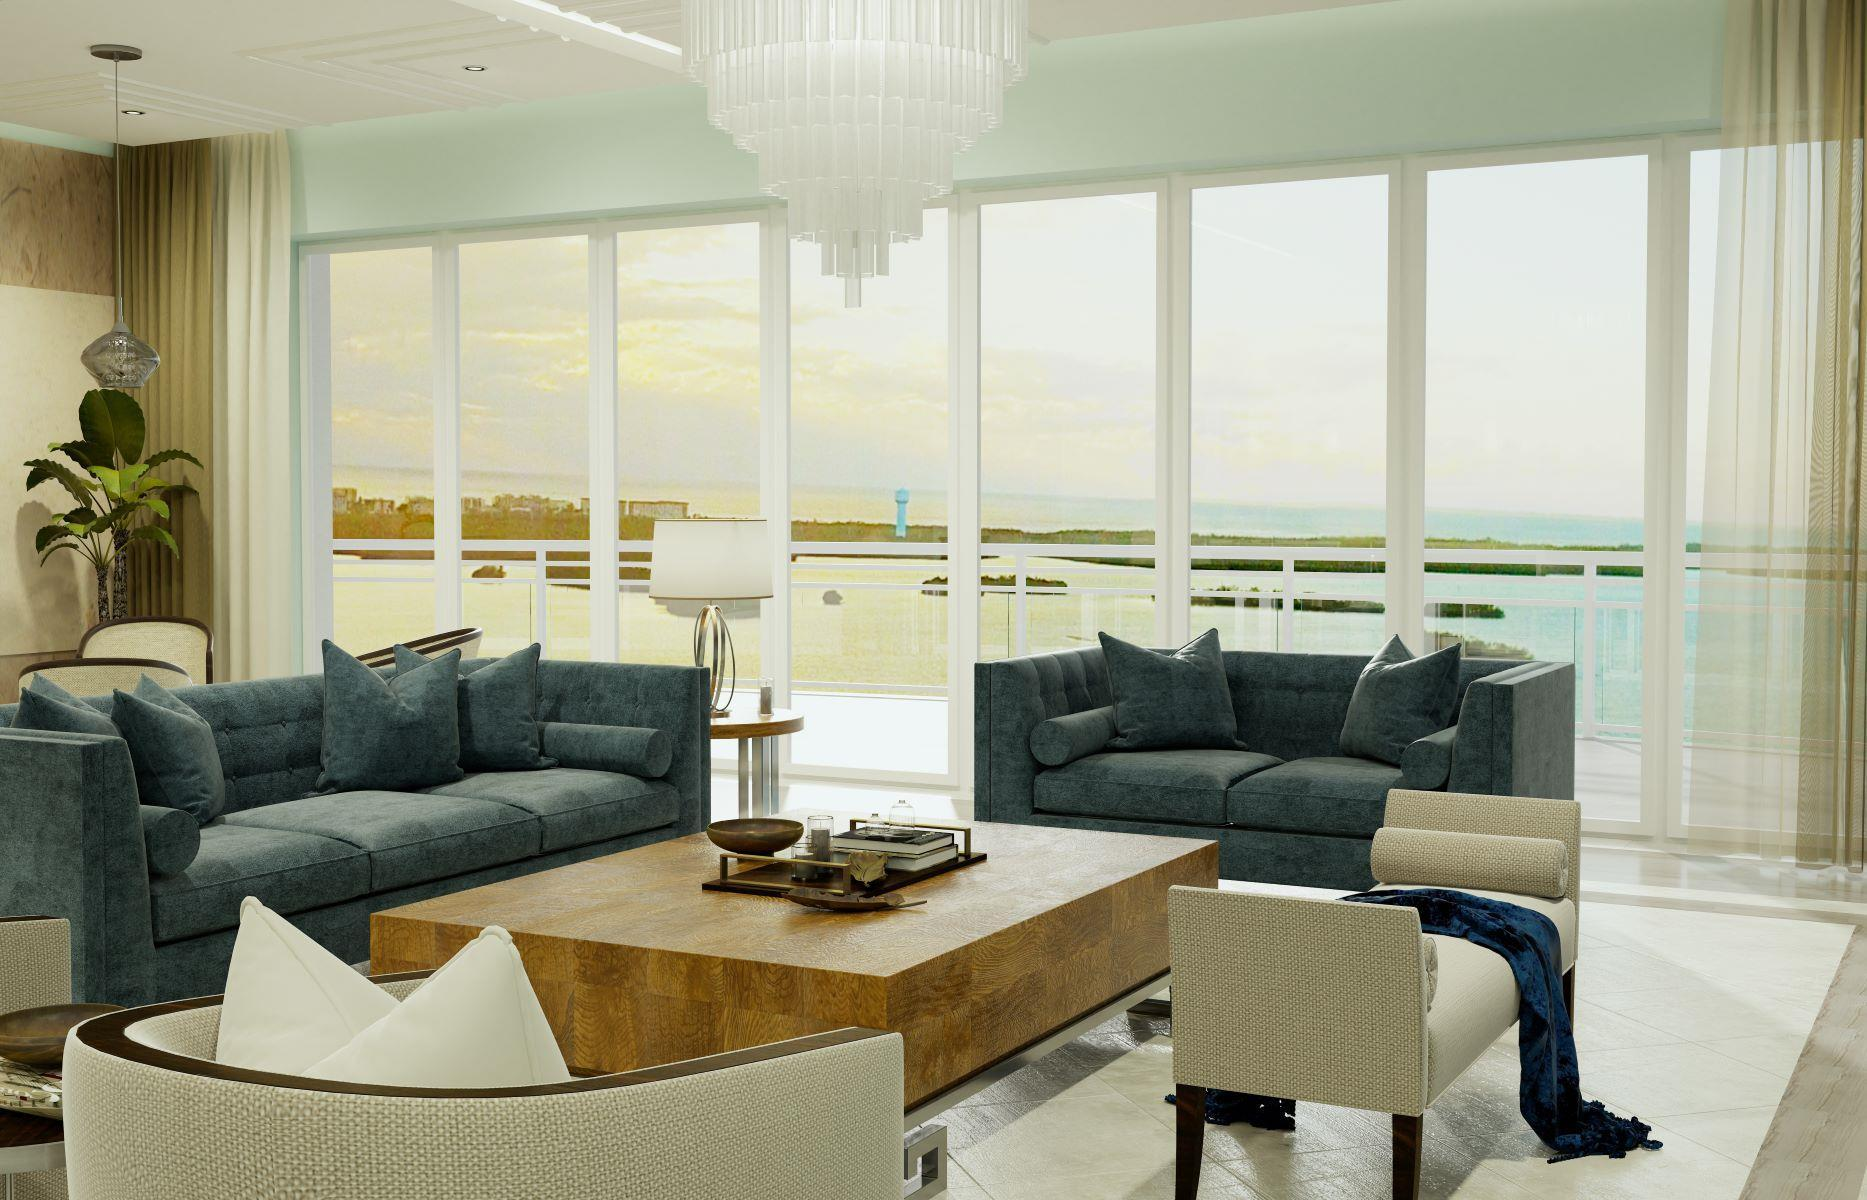 Living Area featured in the Omega Residence 02 By The Ronto Group in Fort Myers, FL